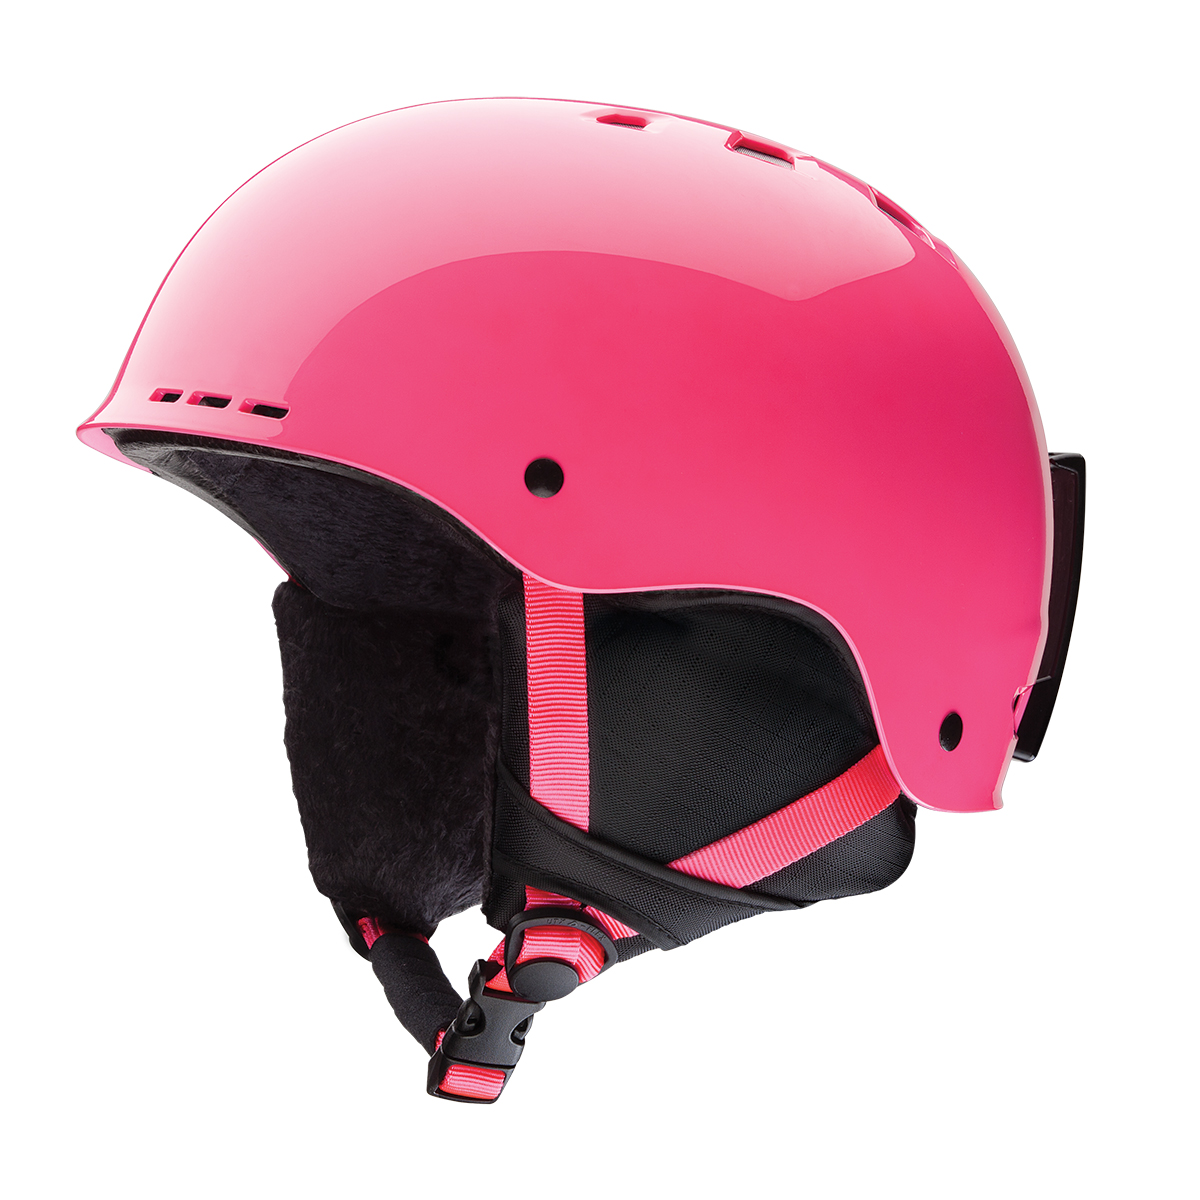 Smith Optics Holt Jr Ski Snow Helmet (Crazy Pink Youth Medium) by Smith Optics